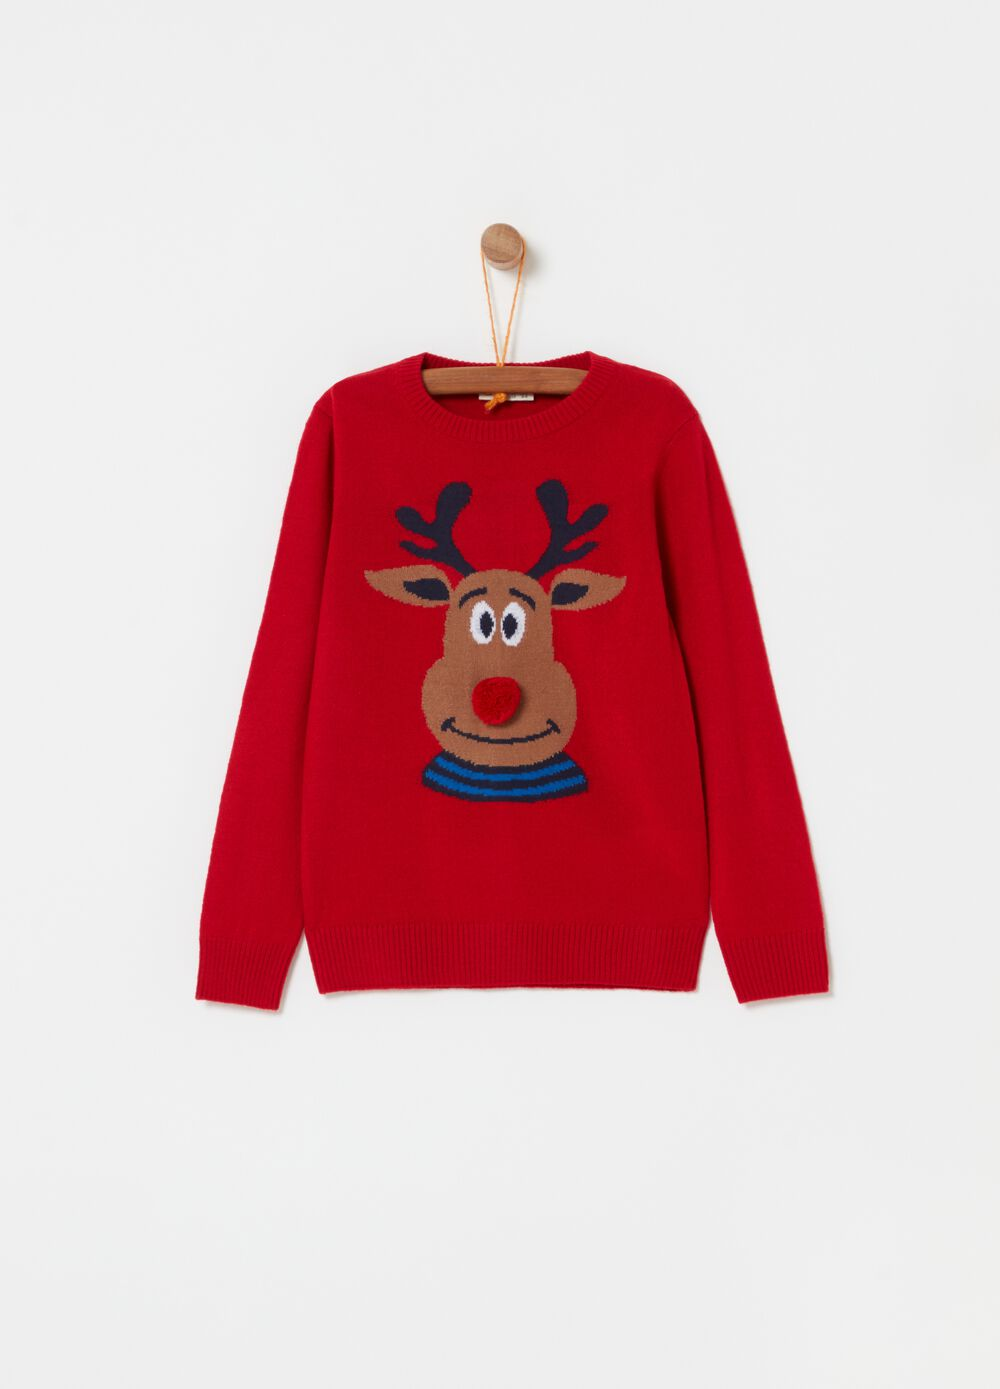 Knitted crew-neck top with reindeer design